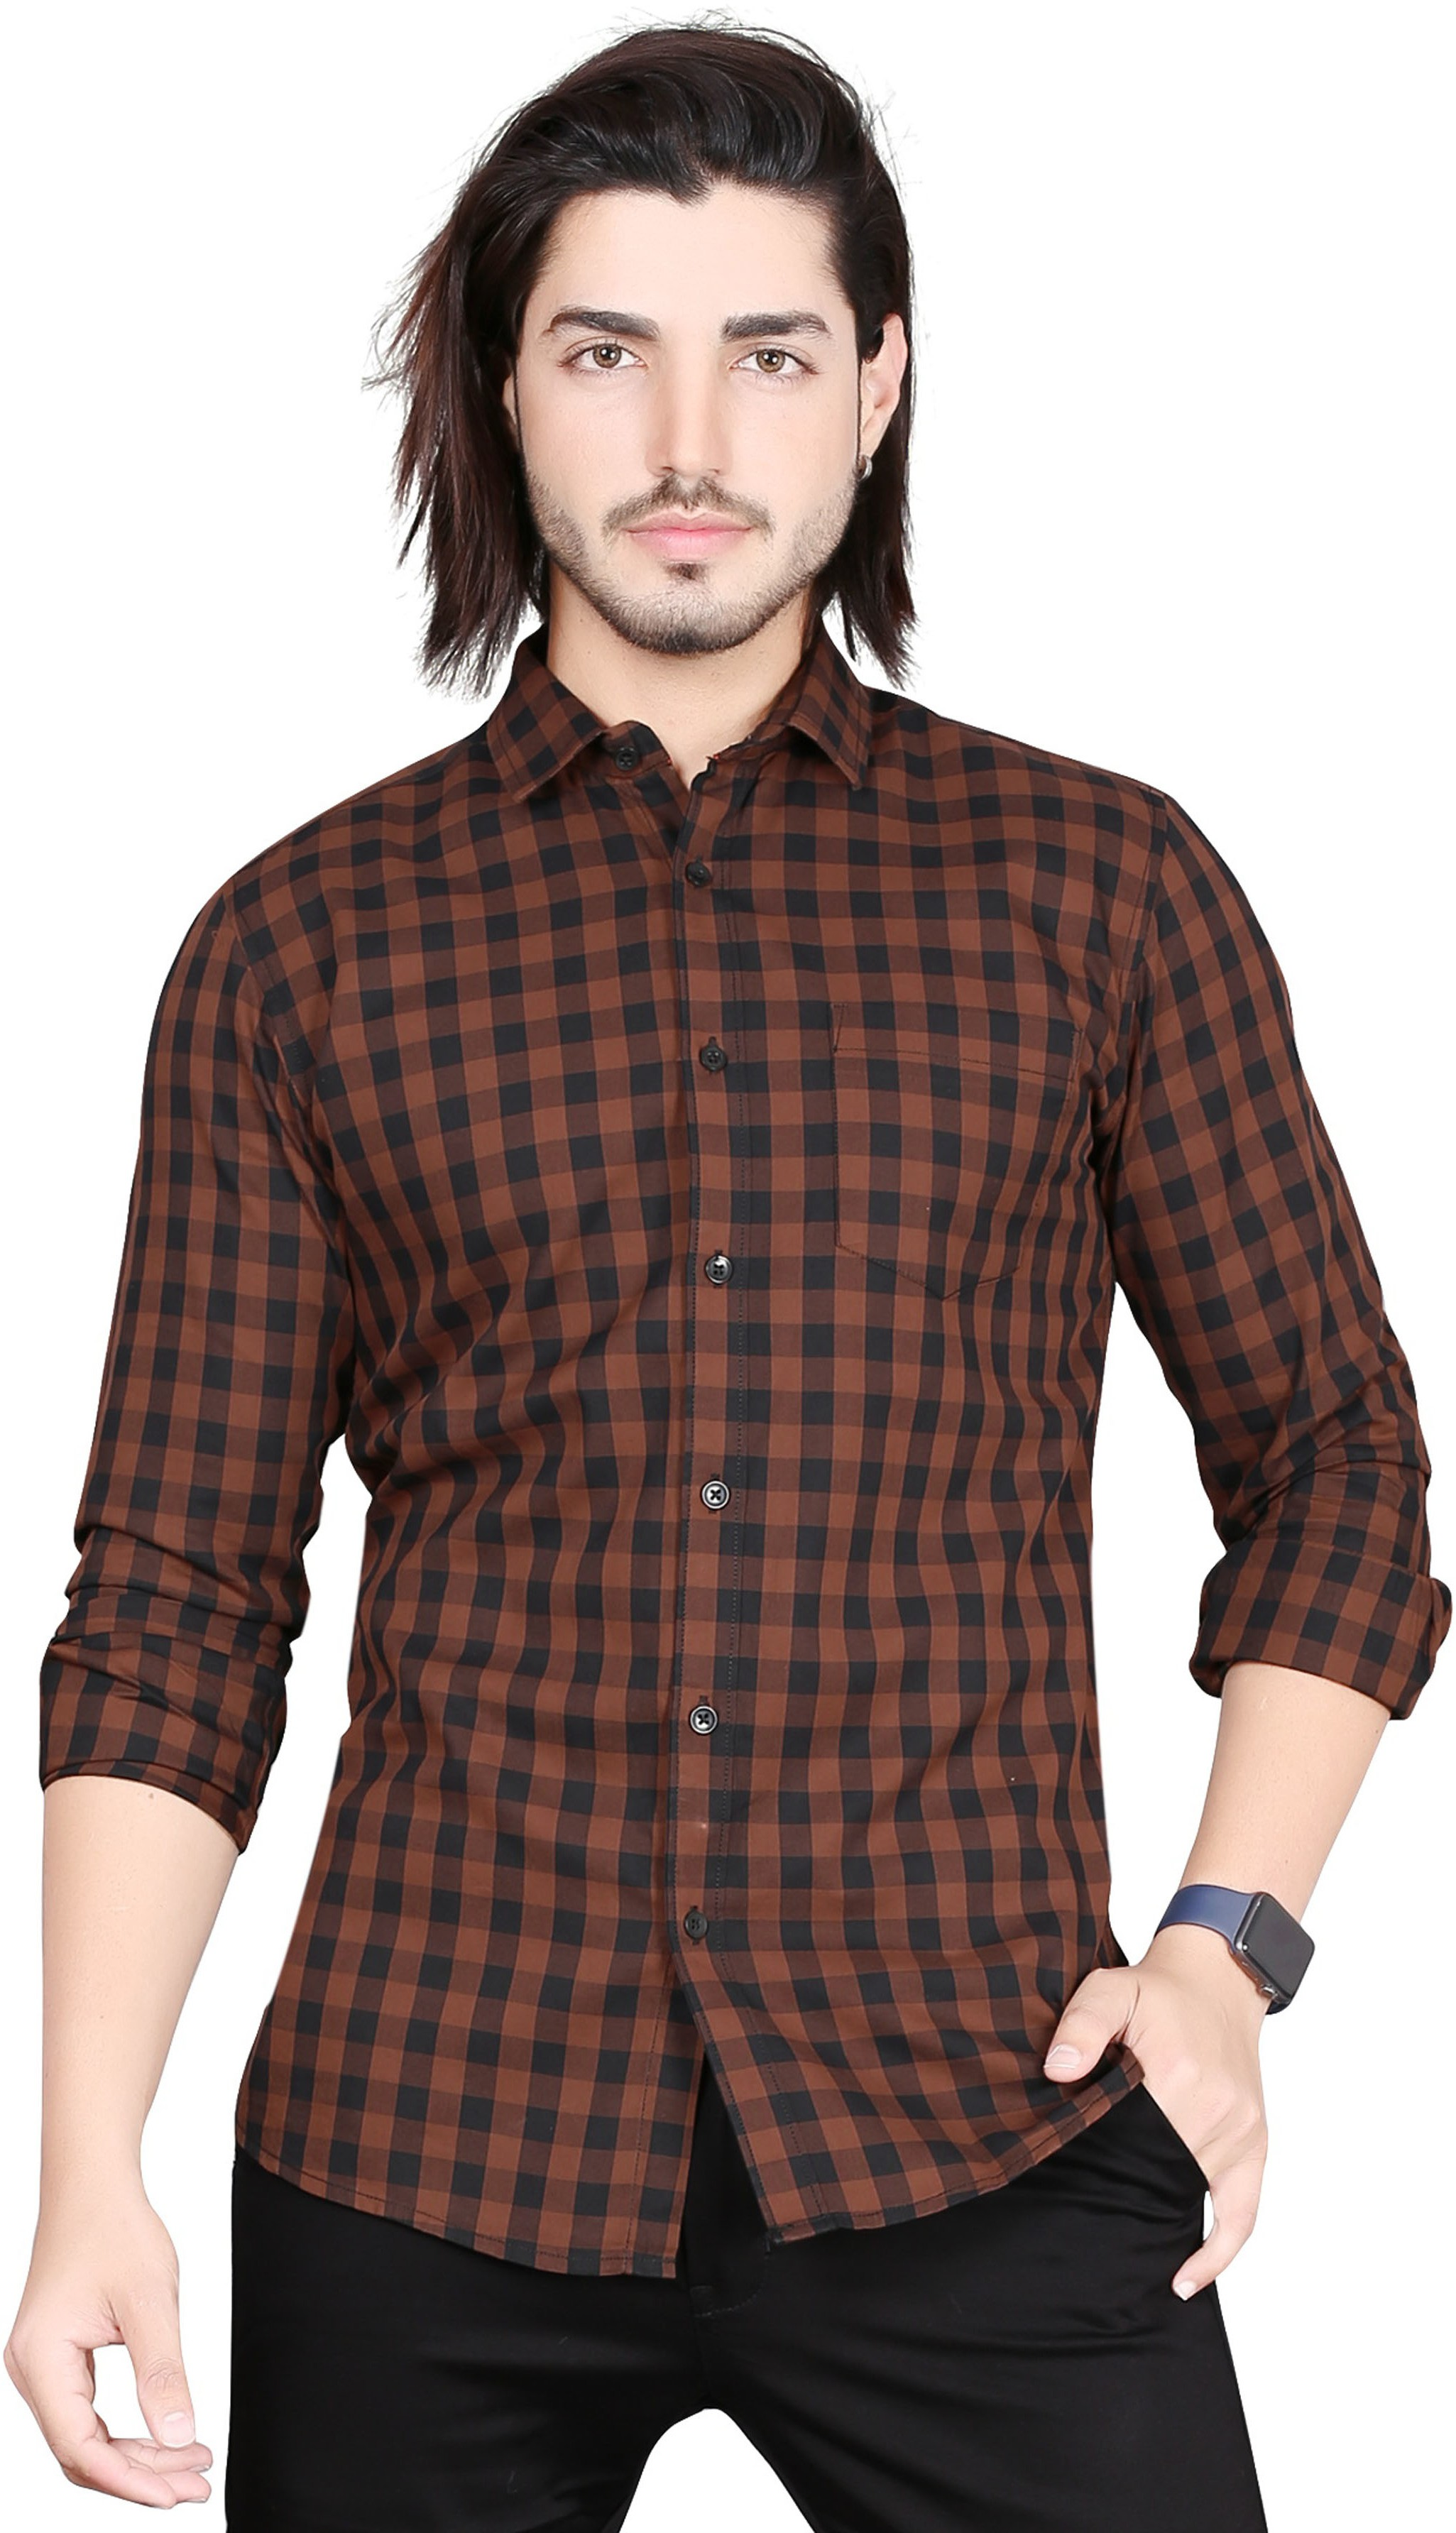 5th Anfold | 5TH ANFOLD Casual Tomtom Checkered Pure Cotton Full Sleev Spread Collar Shirt